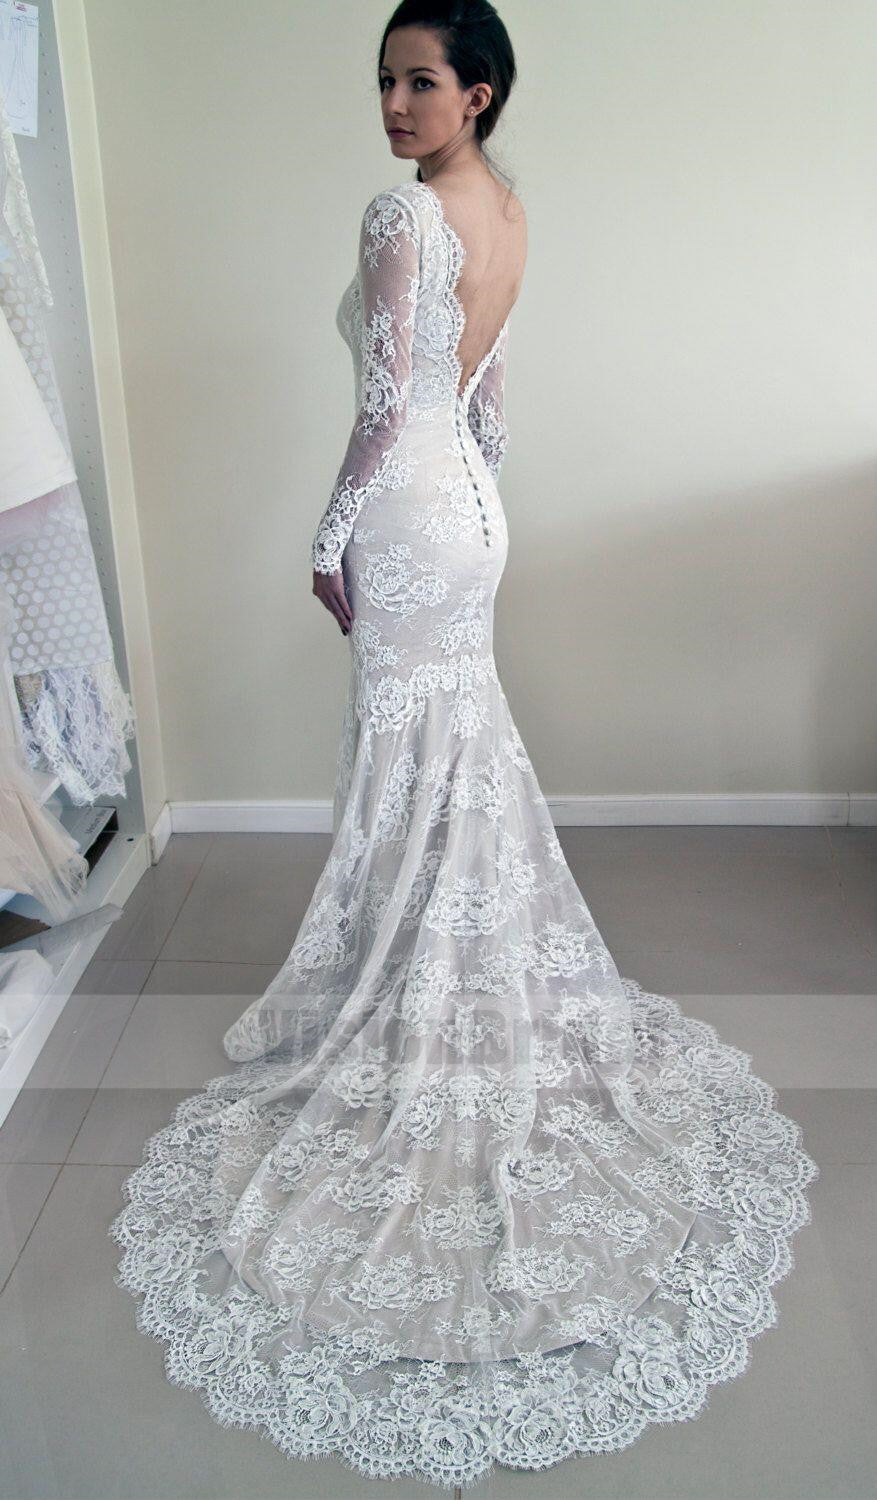 Alluring scoop neckline long sleeves lace mermaid wedding dress alluring scoop neckline long sleeves lace mermaid wedding dress unique open back wedding dress with junglespirit Choice Image